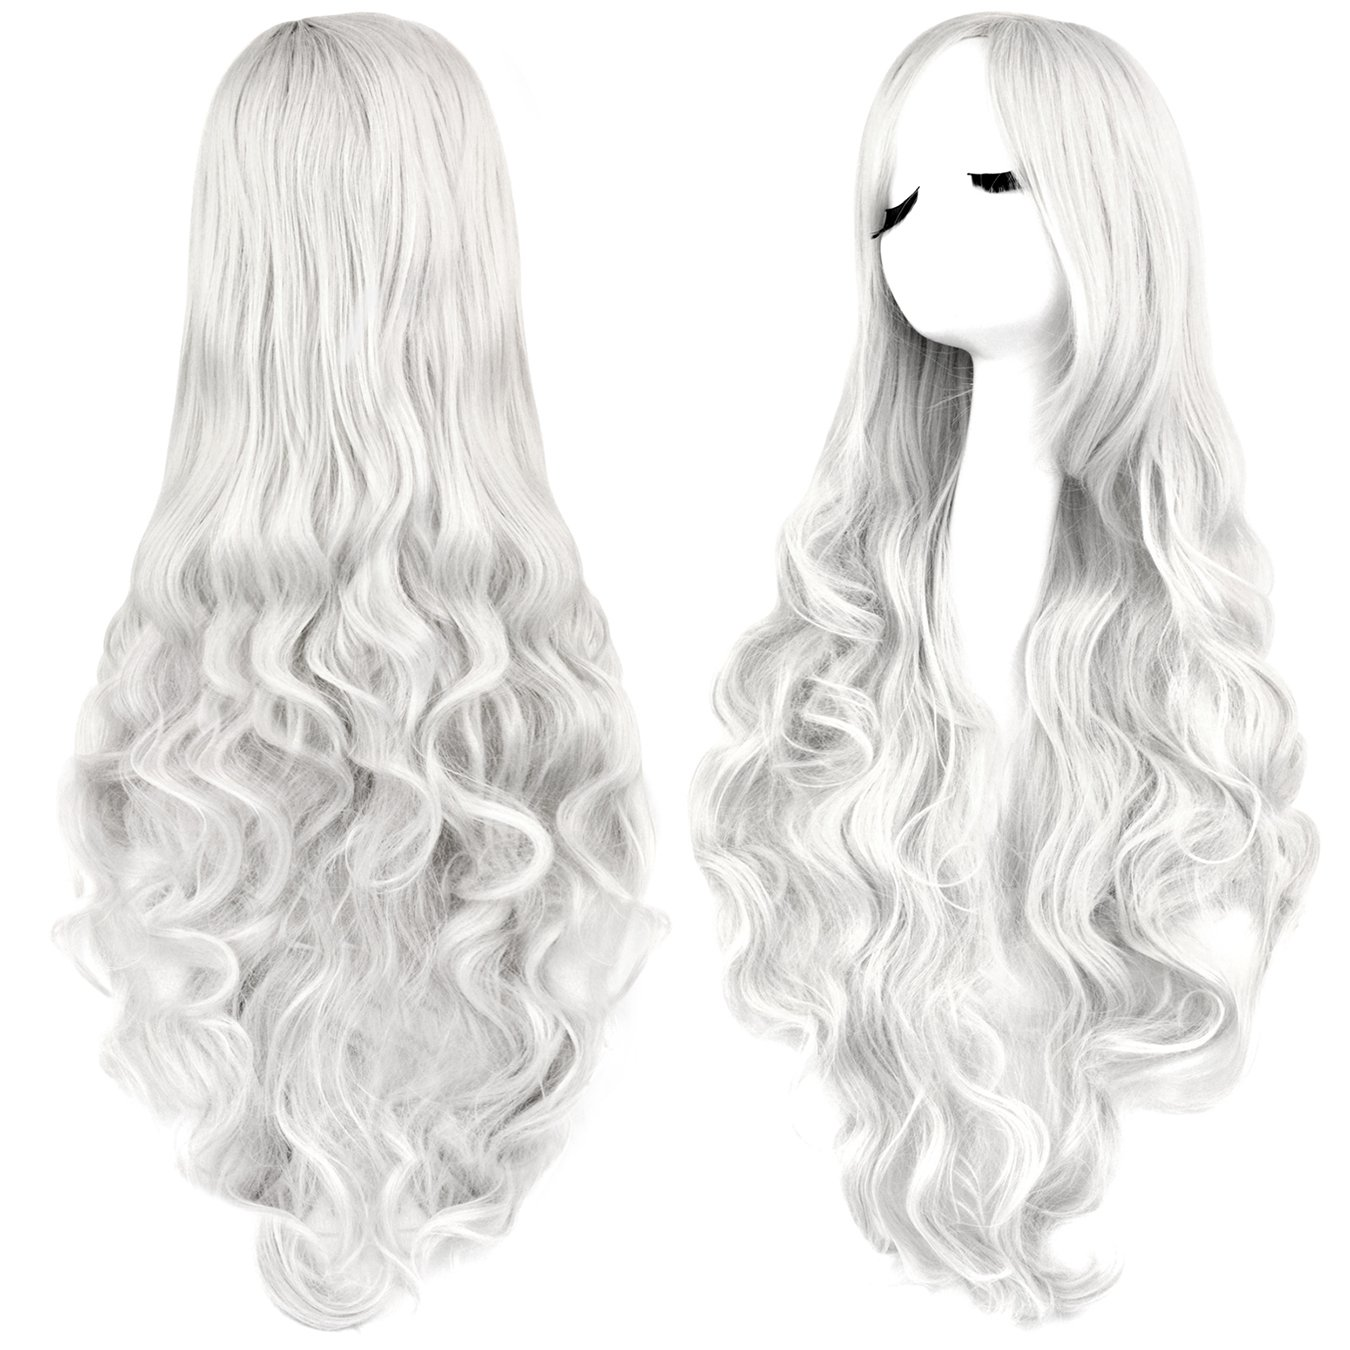 Rbenxia Curly Cosplay Wig Long Hair Heat Resistant Spiral Costume Wigs Silver